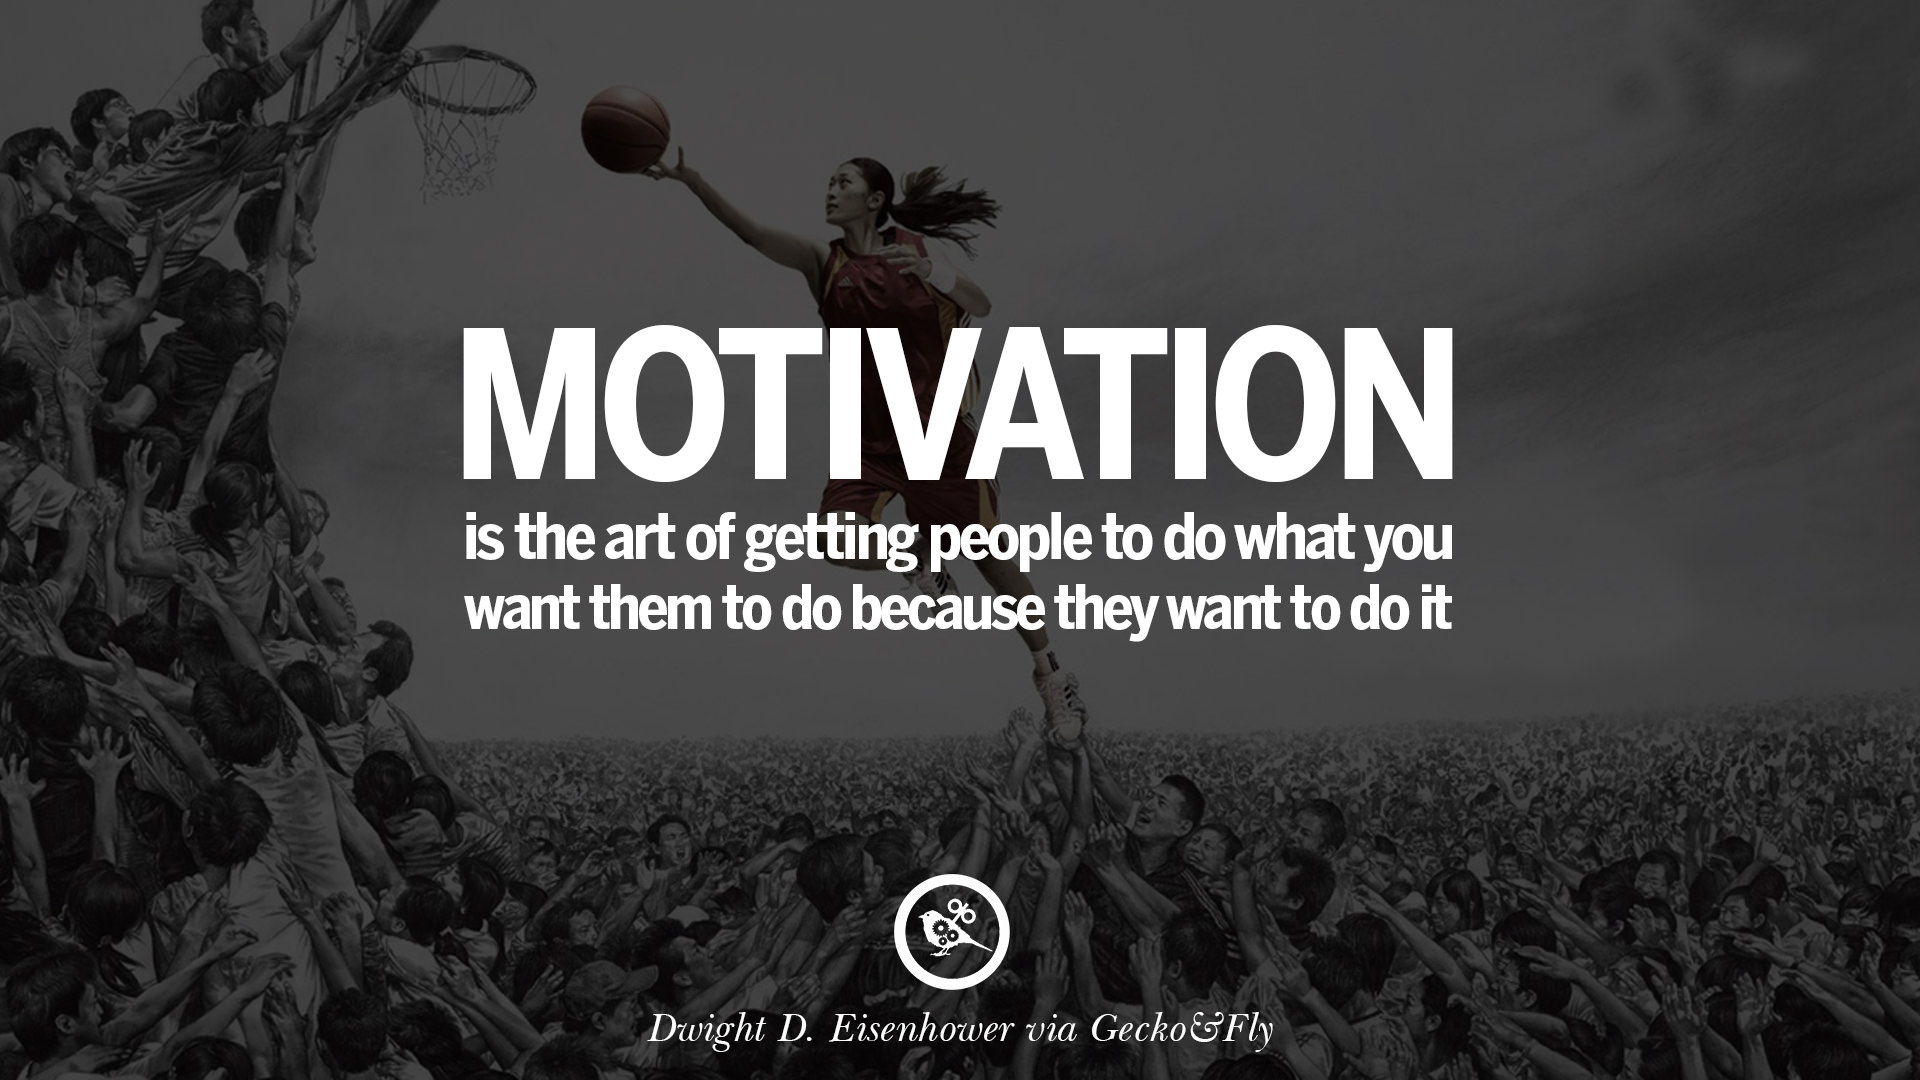 Motivational Sayings 20 Encouraging And Motivational Poster Quotes On Sports And Life